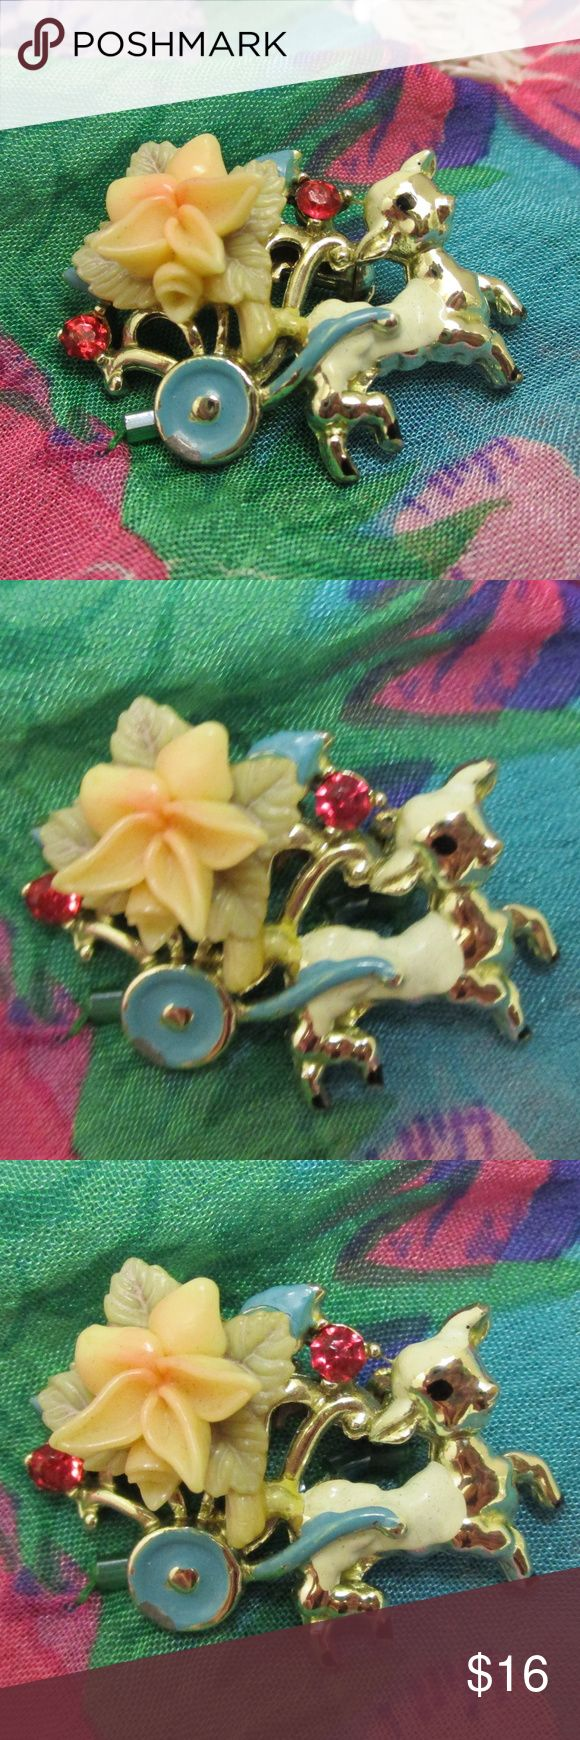 """Lamb Flower Cart Vintage Pin Colorful 1950s Presenting a precious lamb pulling flower cart vintage pin brooch. Silver tone metal, blue, white and black enamel, plastic resin pink/cream flower and faceted ruby crystal rhinestones adorn this 1950s figural lamb piece. Dimensional resin flower gives depth to this charming animal and cart brooch.  1 1/2"""" x 1"""" x 3/8"""" deep.  Secure rollover clasp. EUC - polish to satisfaction. Perfect for spring, Easter, to gift a special girl or woman or to add to…"""